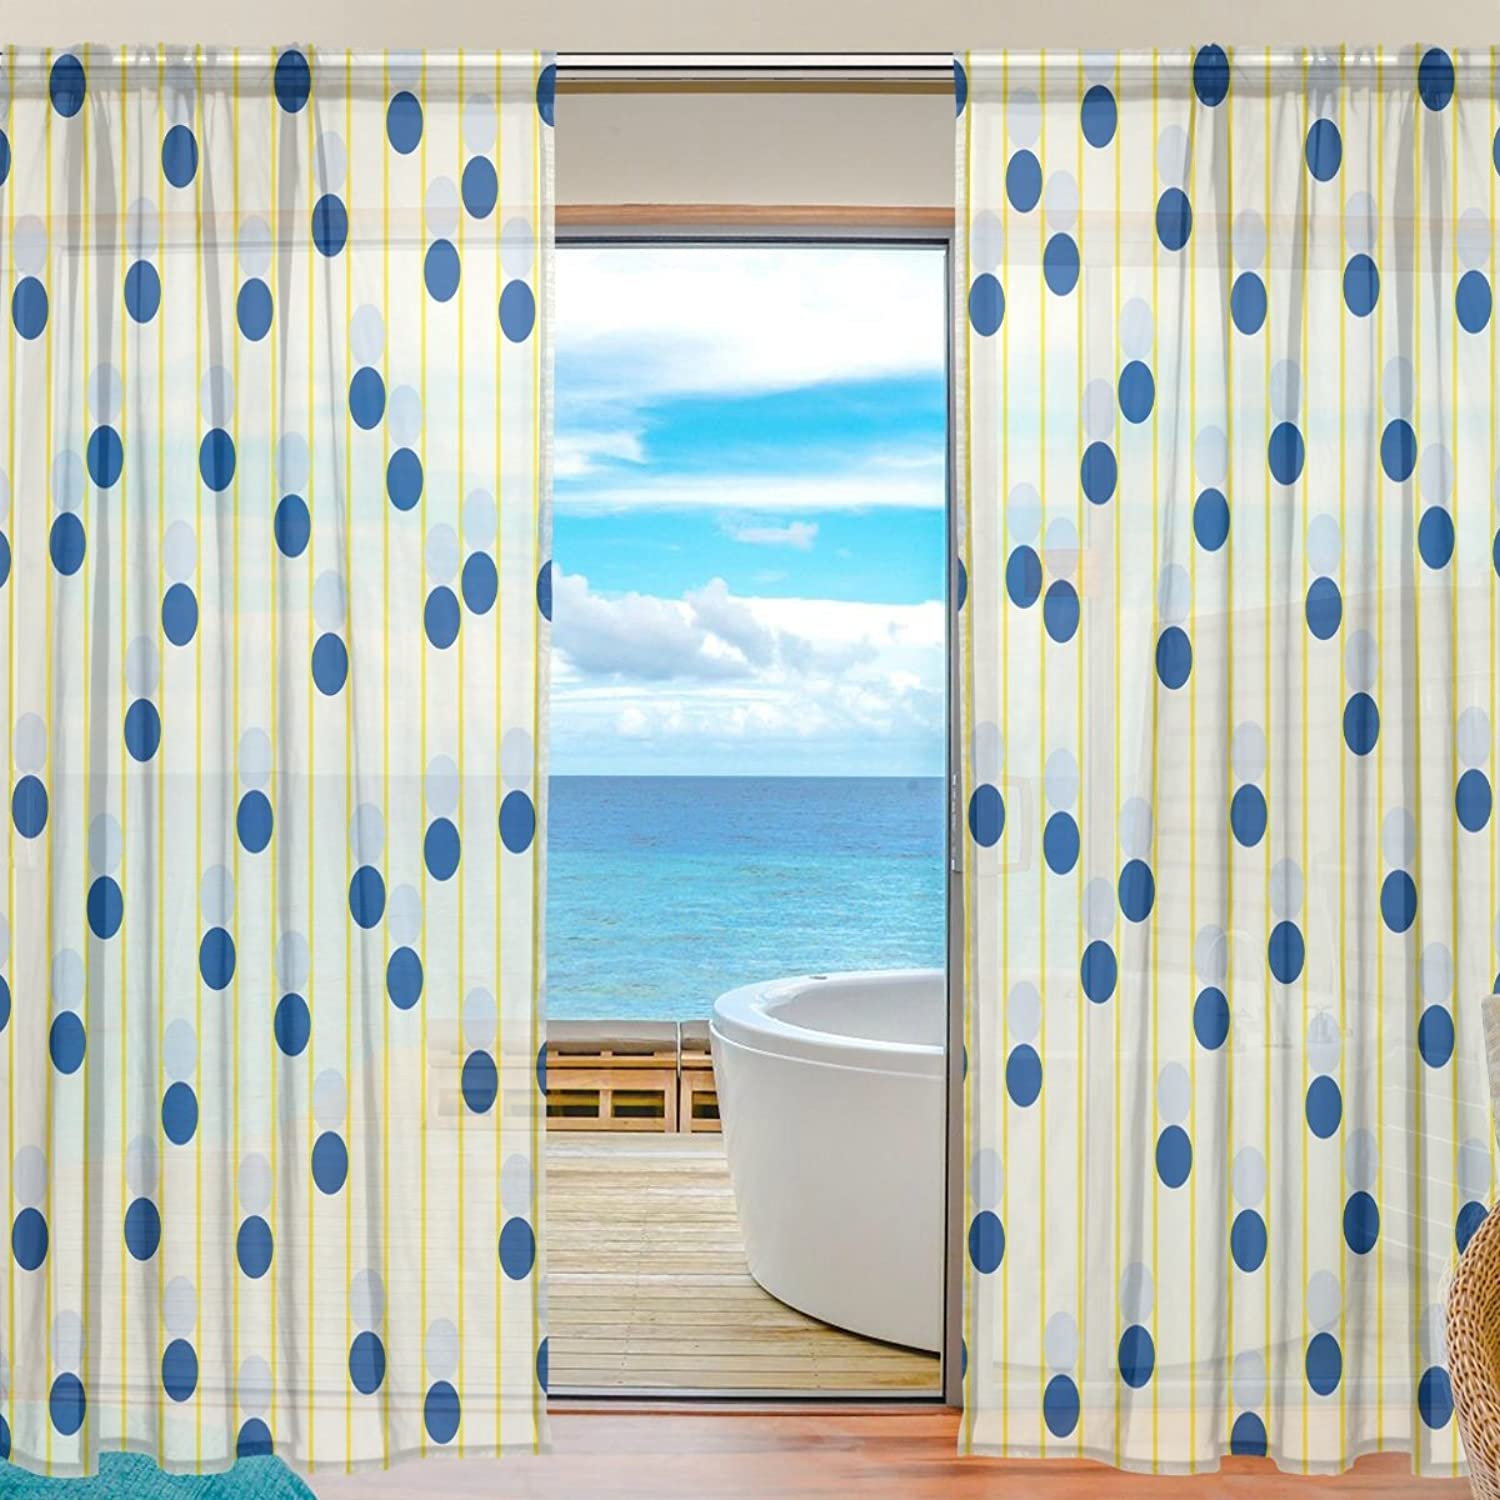 Vantaso Sheer Curtains 78 inch Long bluee Polka Dots for Kids Girls Bedroom Living Room Window Decorative 2 Panels